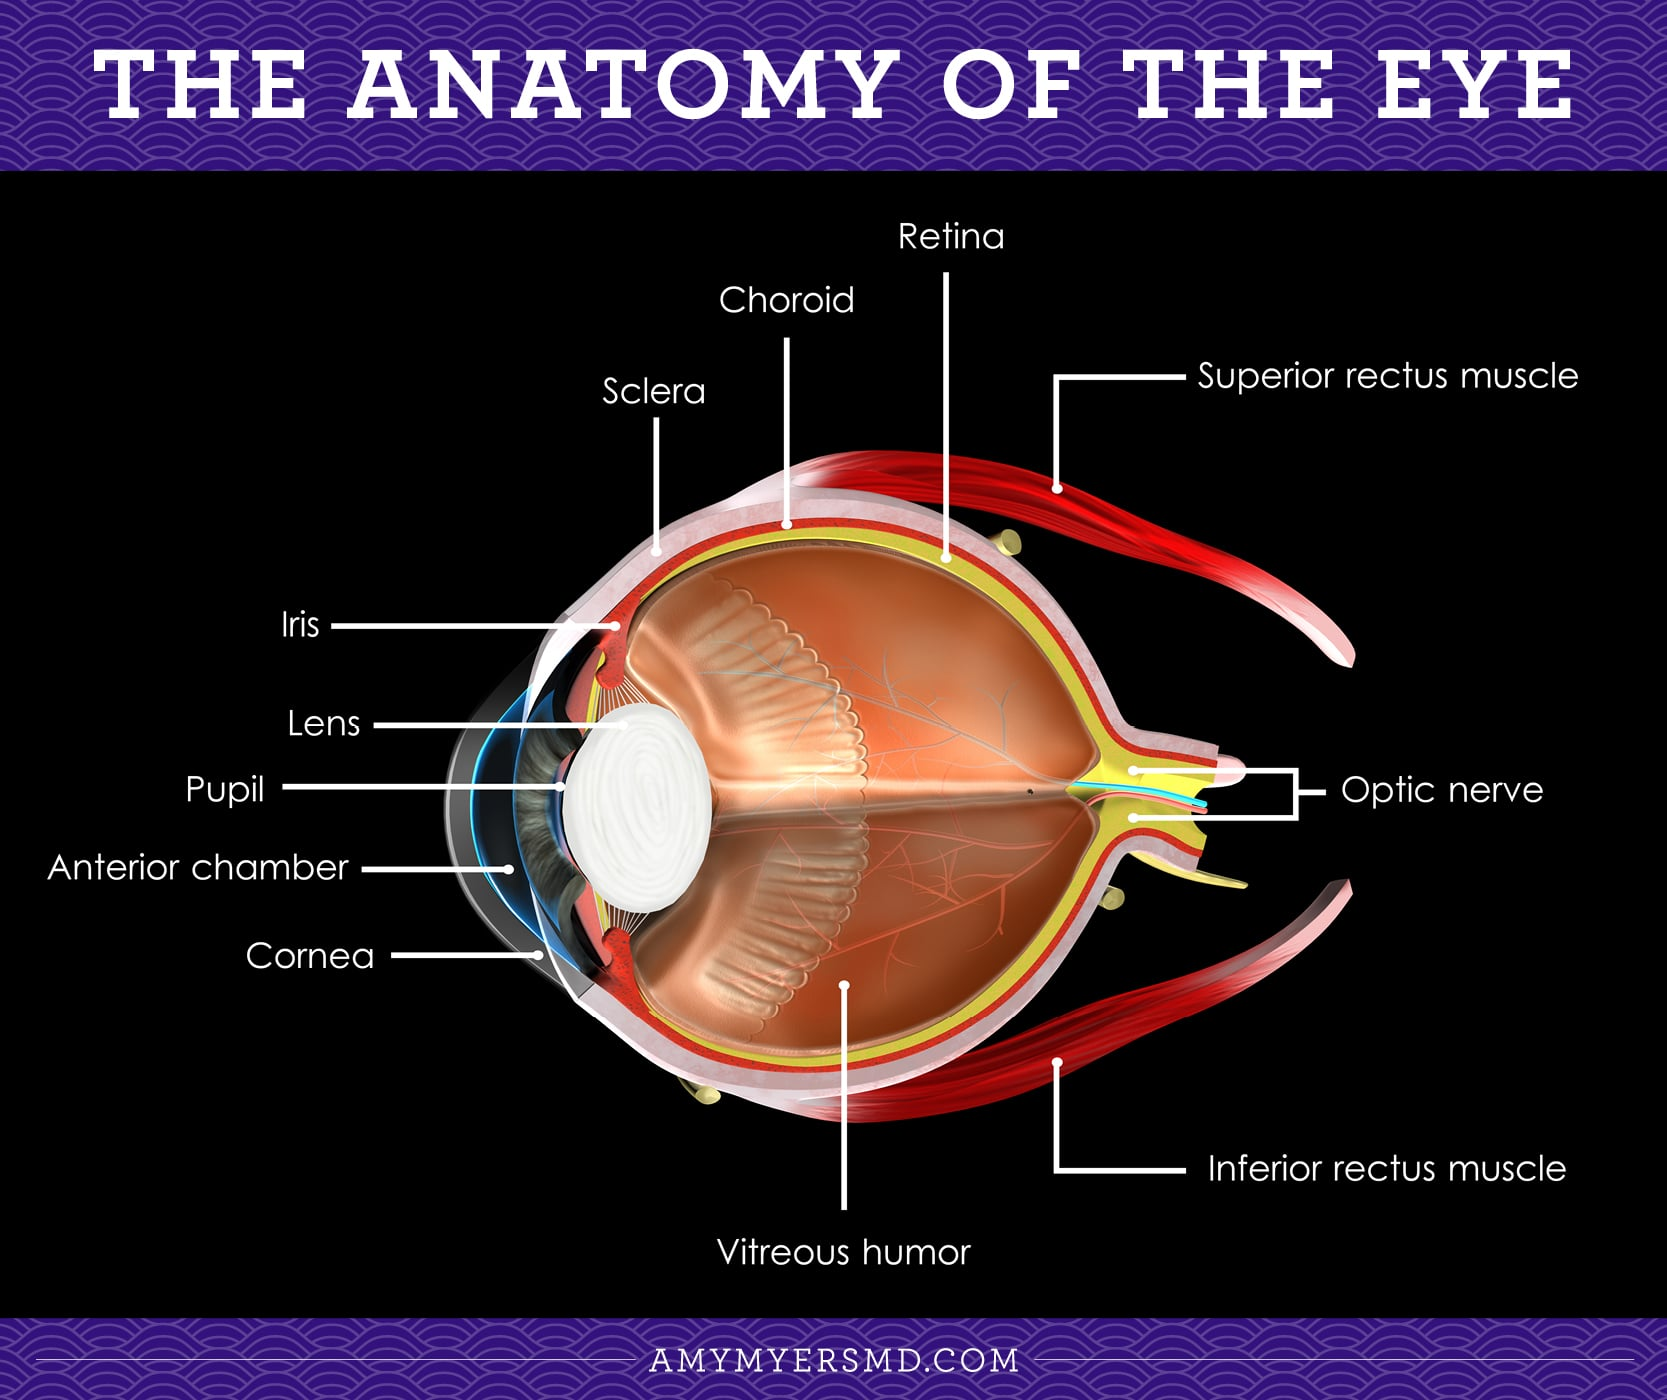 The Anatomy of the Eye - Infographic - Amy Myers MD